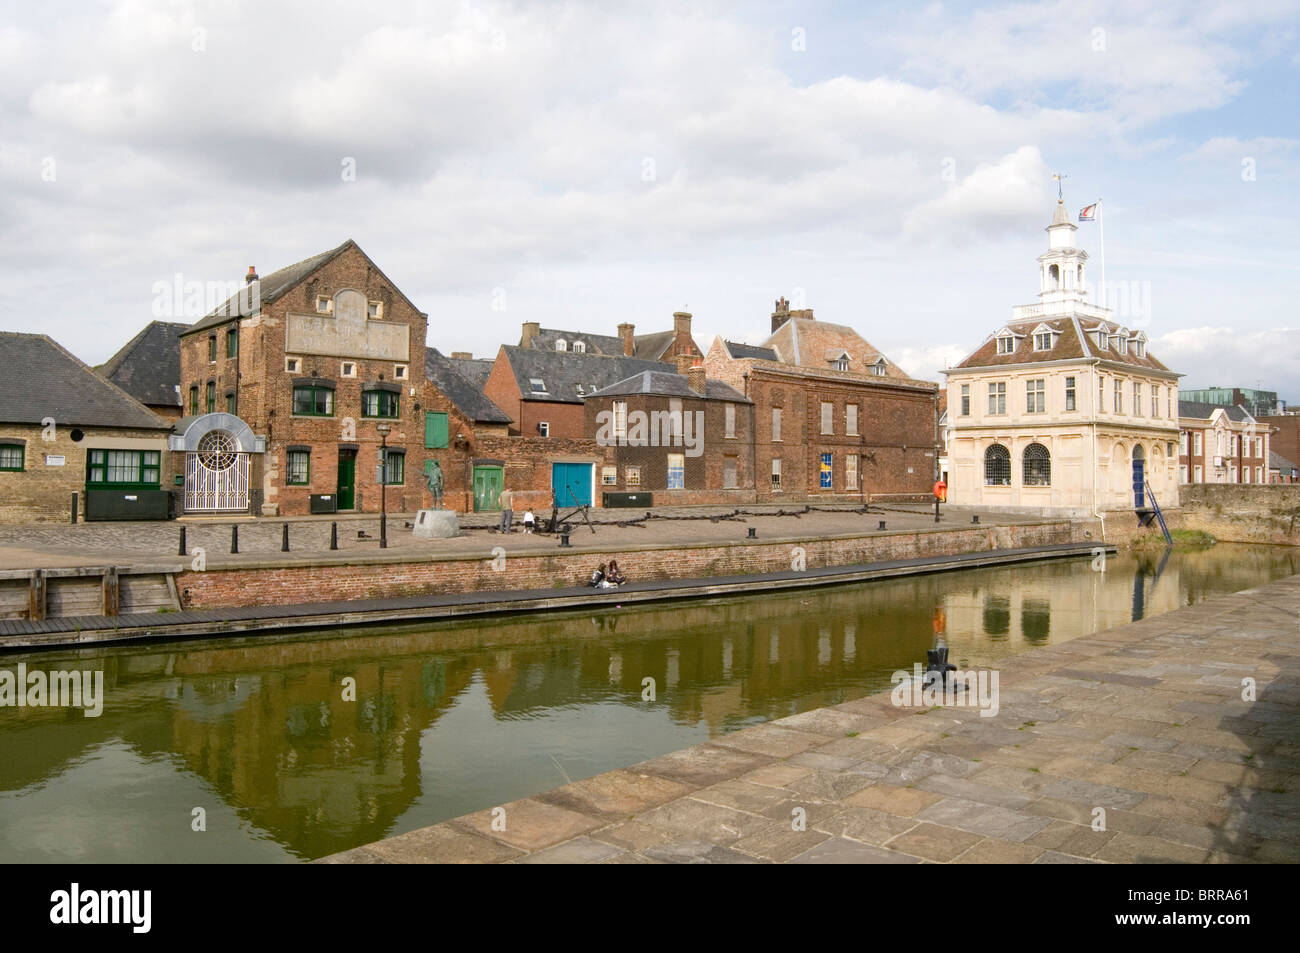 kings lynn great ouse river side warehouses warehouse quayside quay canal water norfolk dock docks - Stock Image